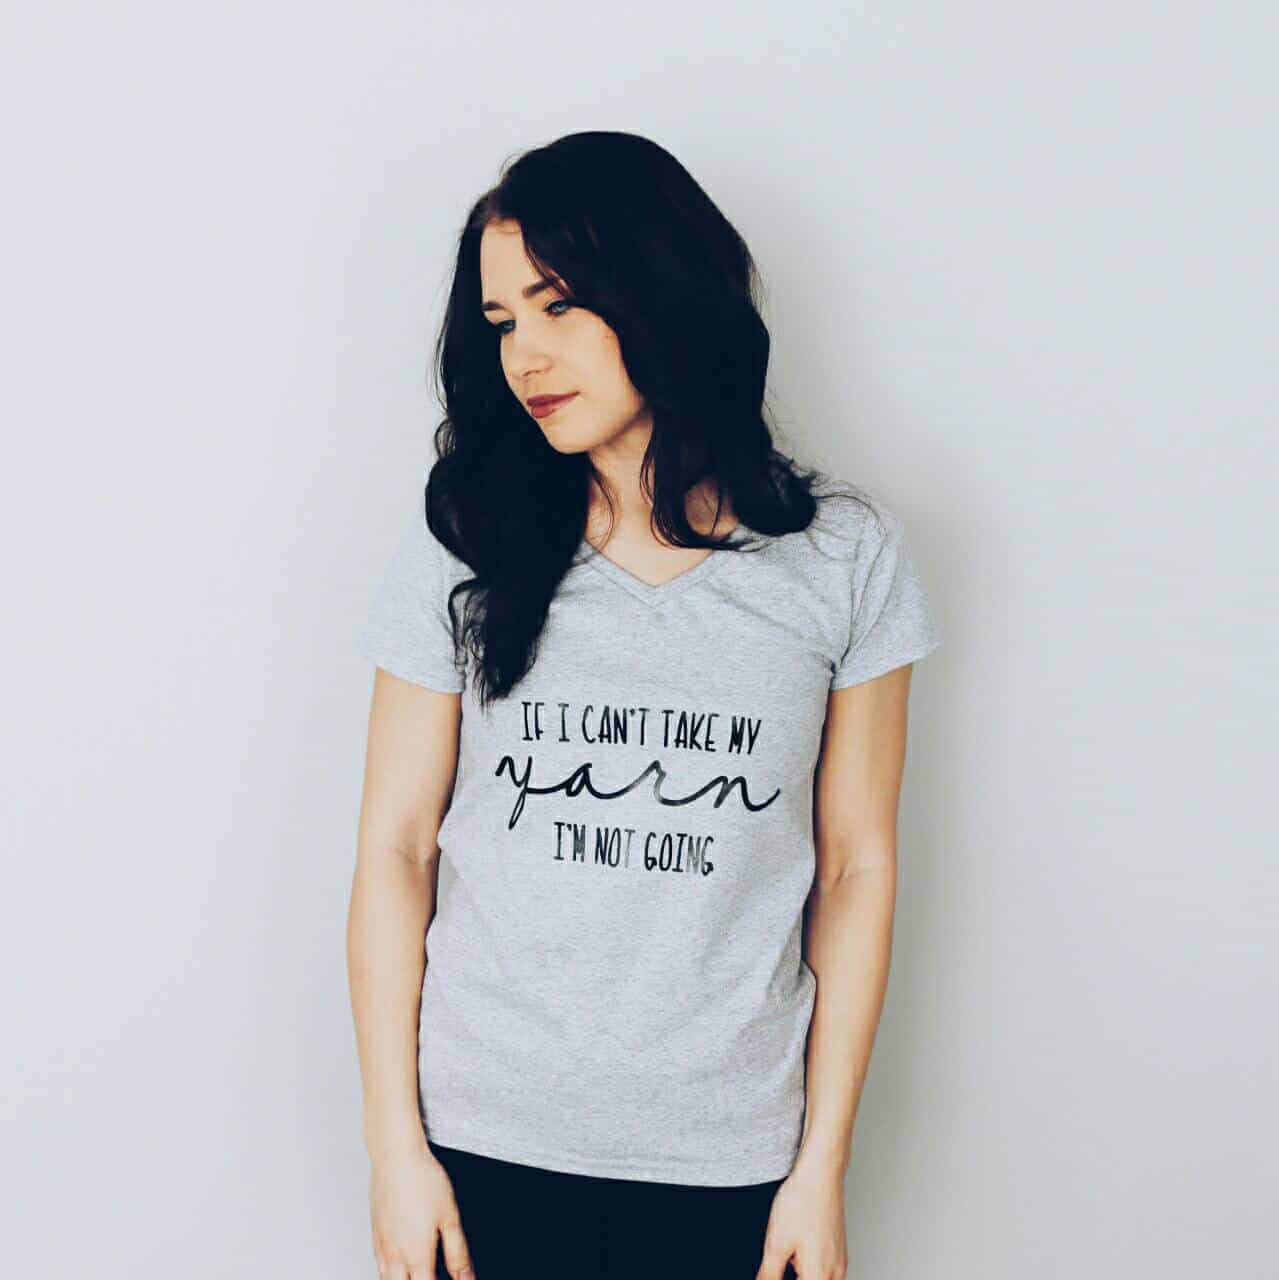 """Photo of a woman wearing a gray shirt with """"If I Can't Take My Yarn"""" on it"""